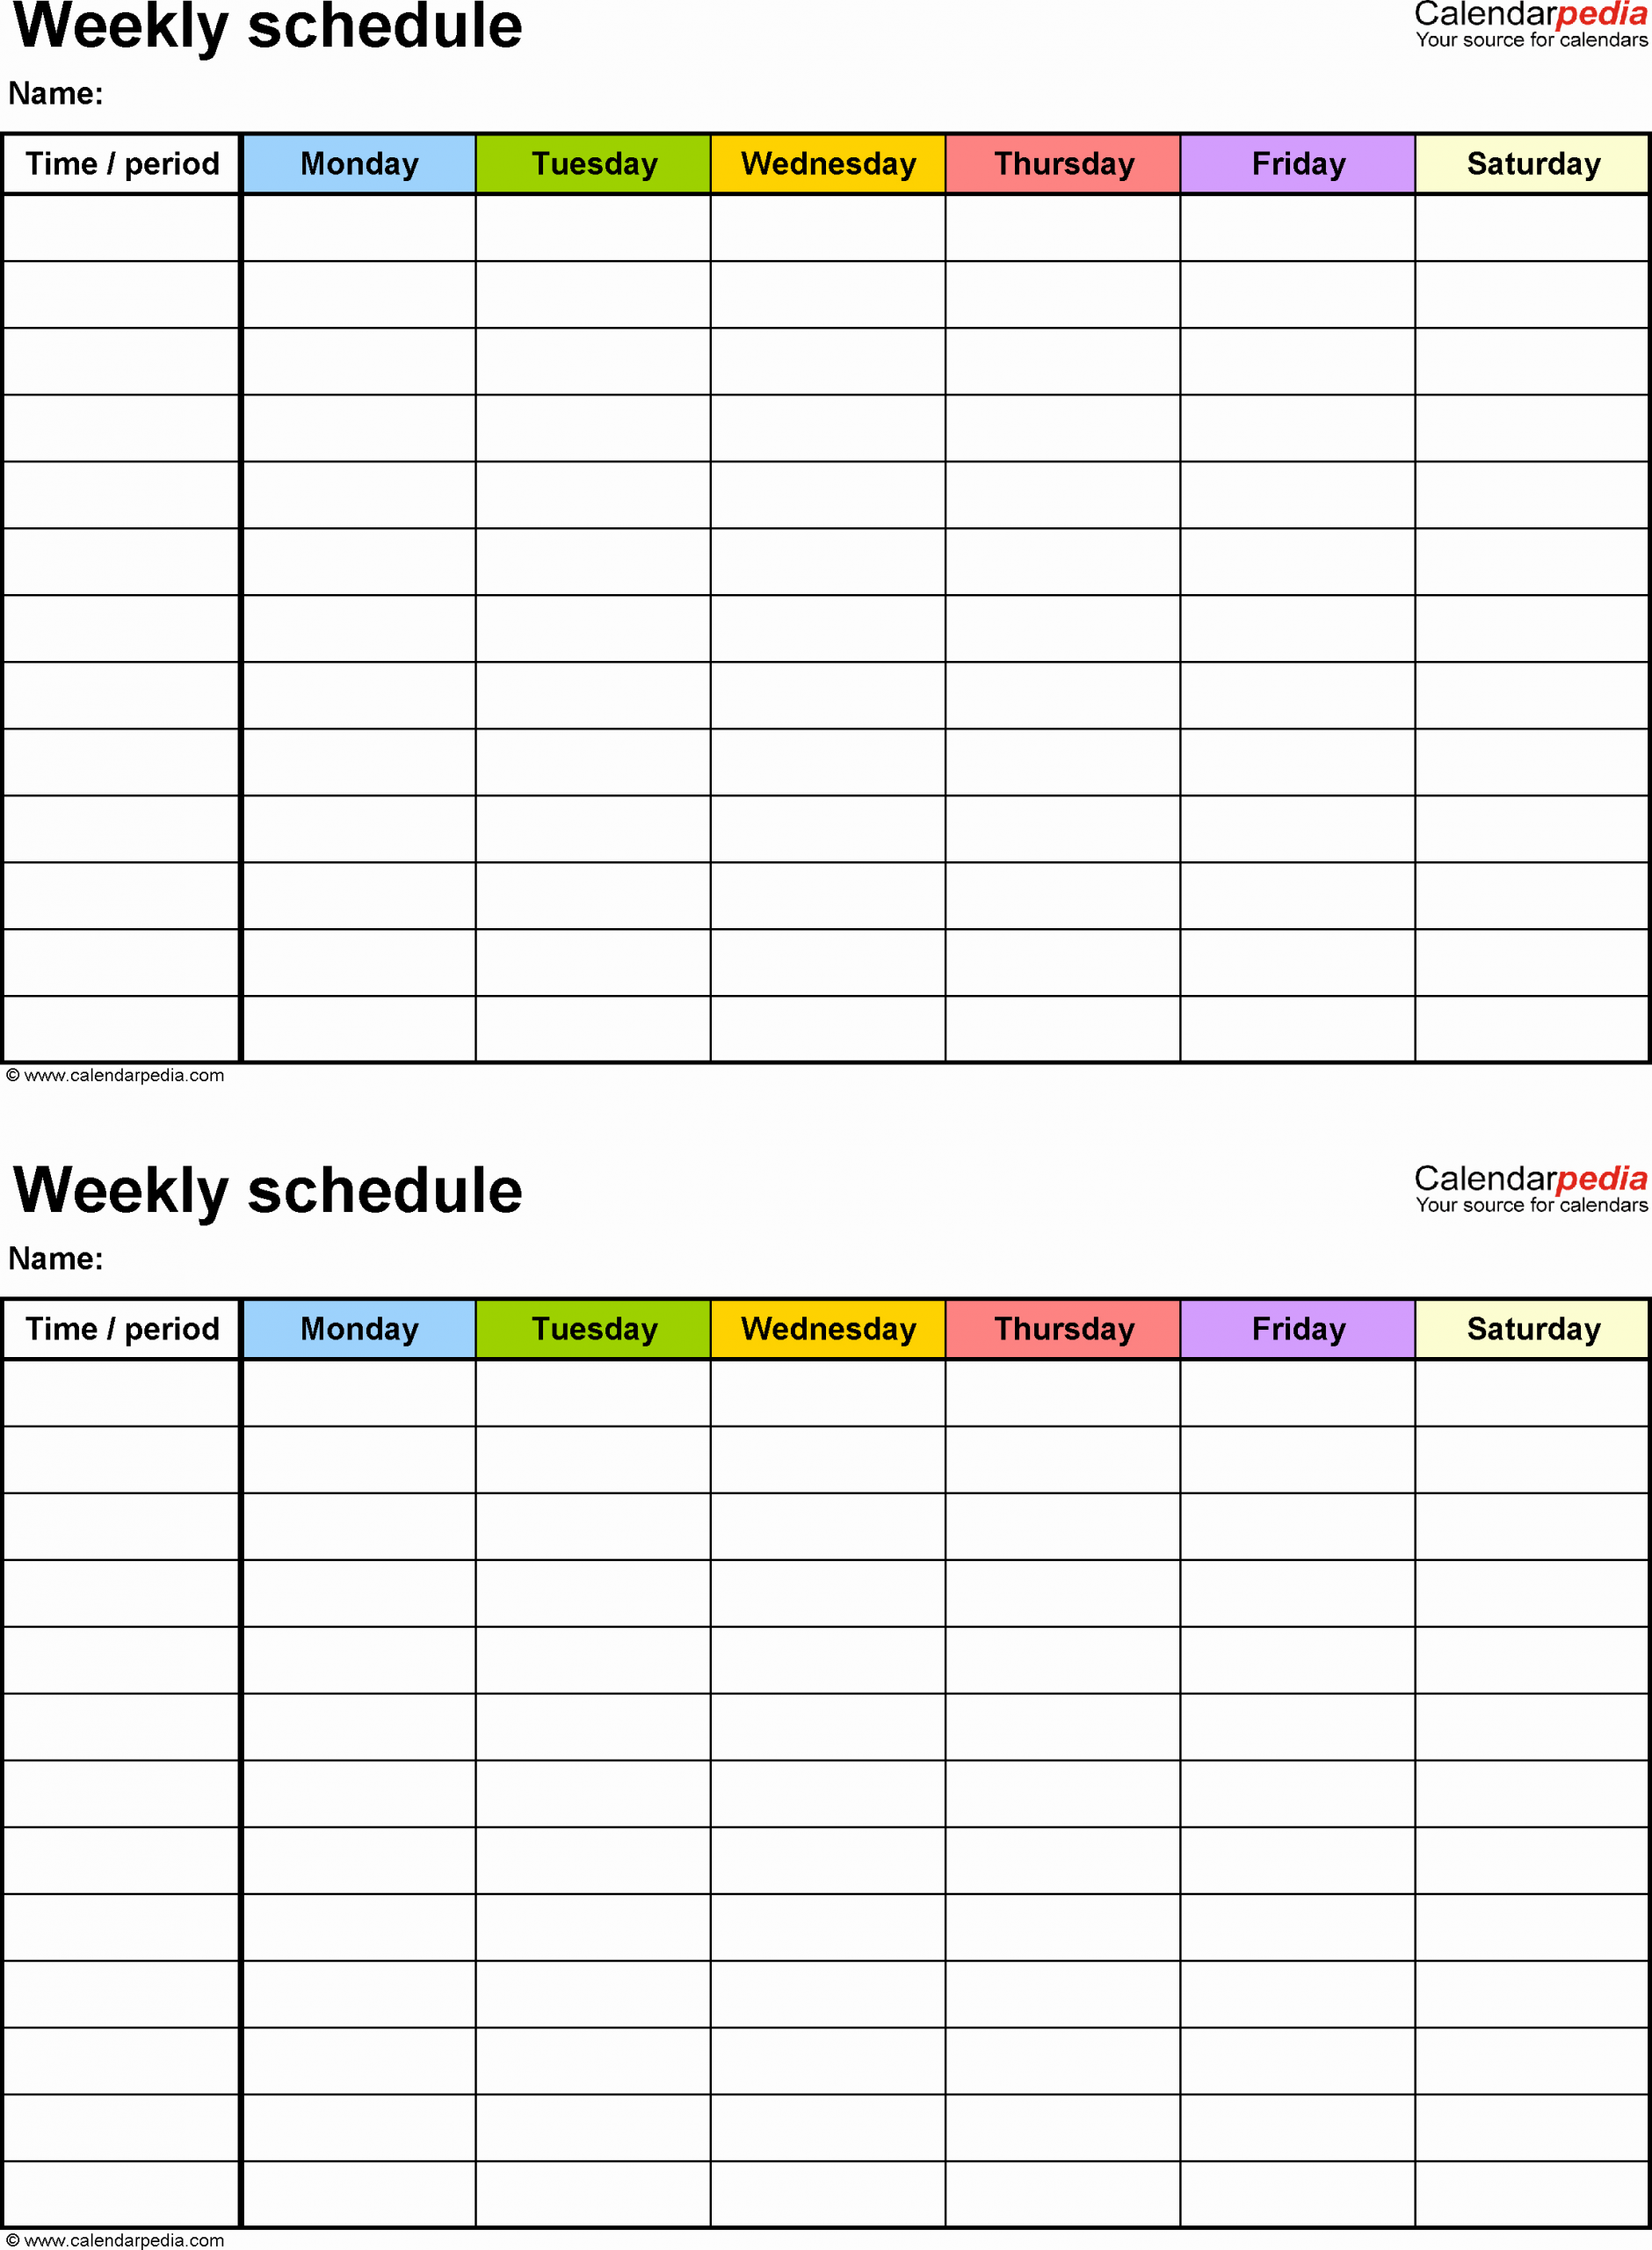 Week Day Schedule Template Lovely Free Weekly Schedule Templates for Excel 18 Templates